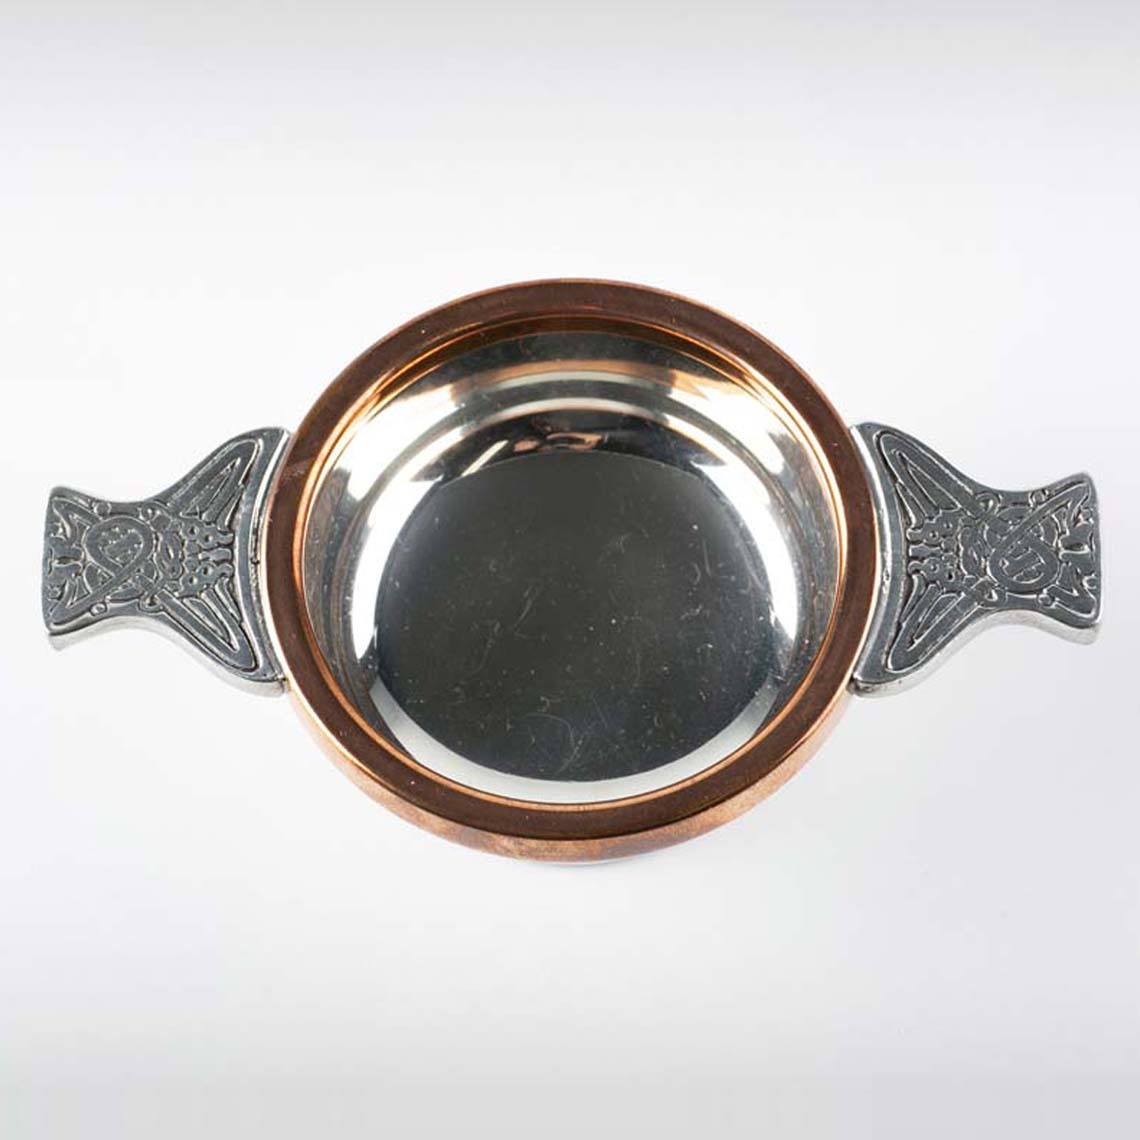 Copper Rim Quaich